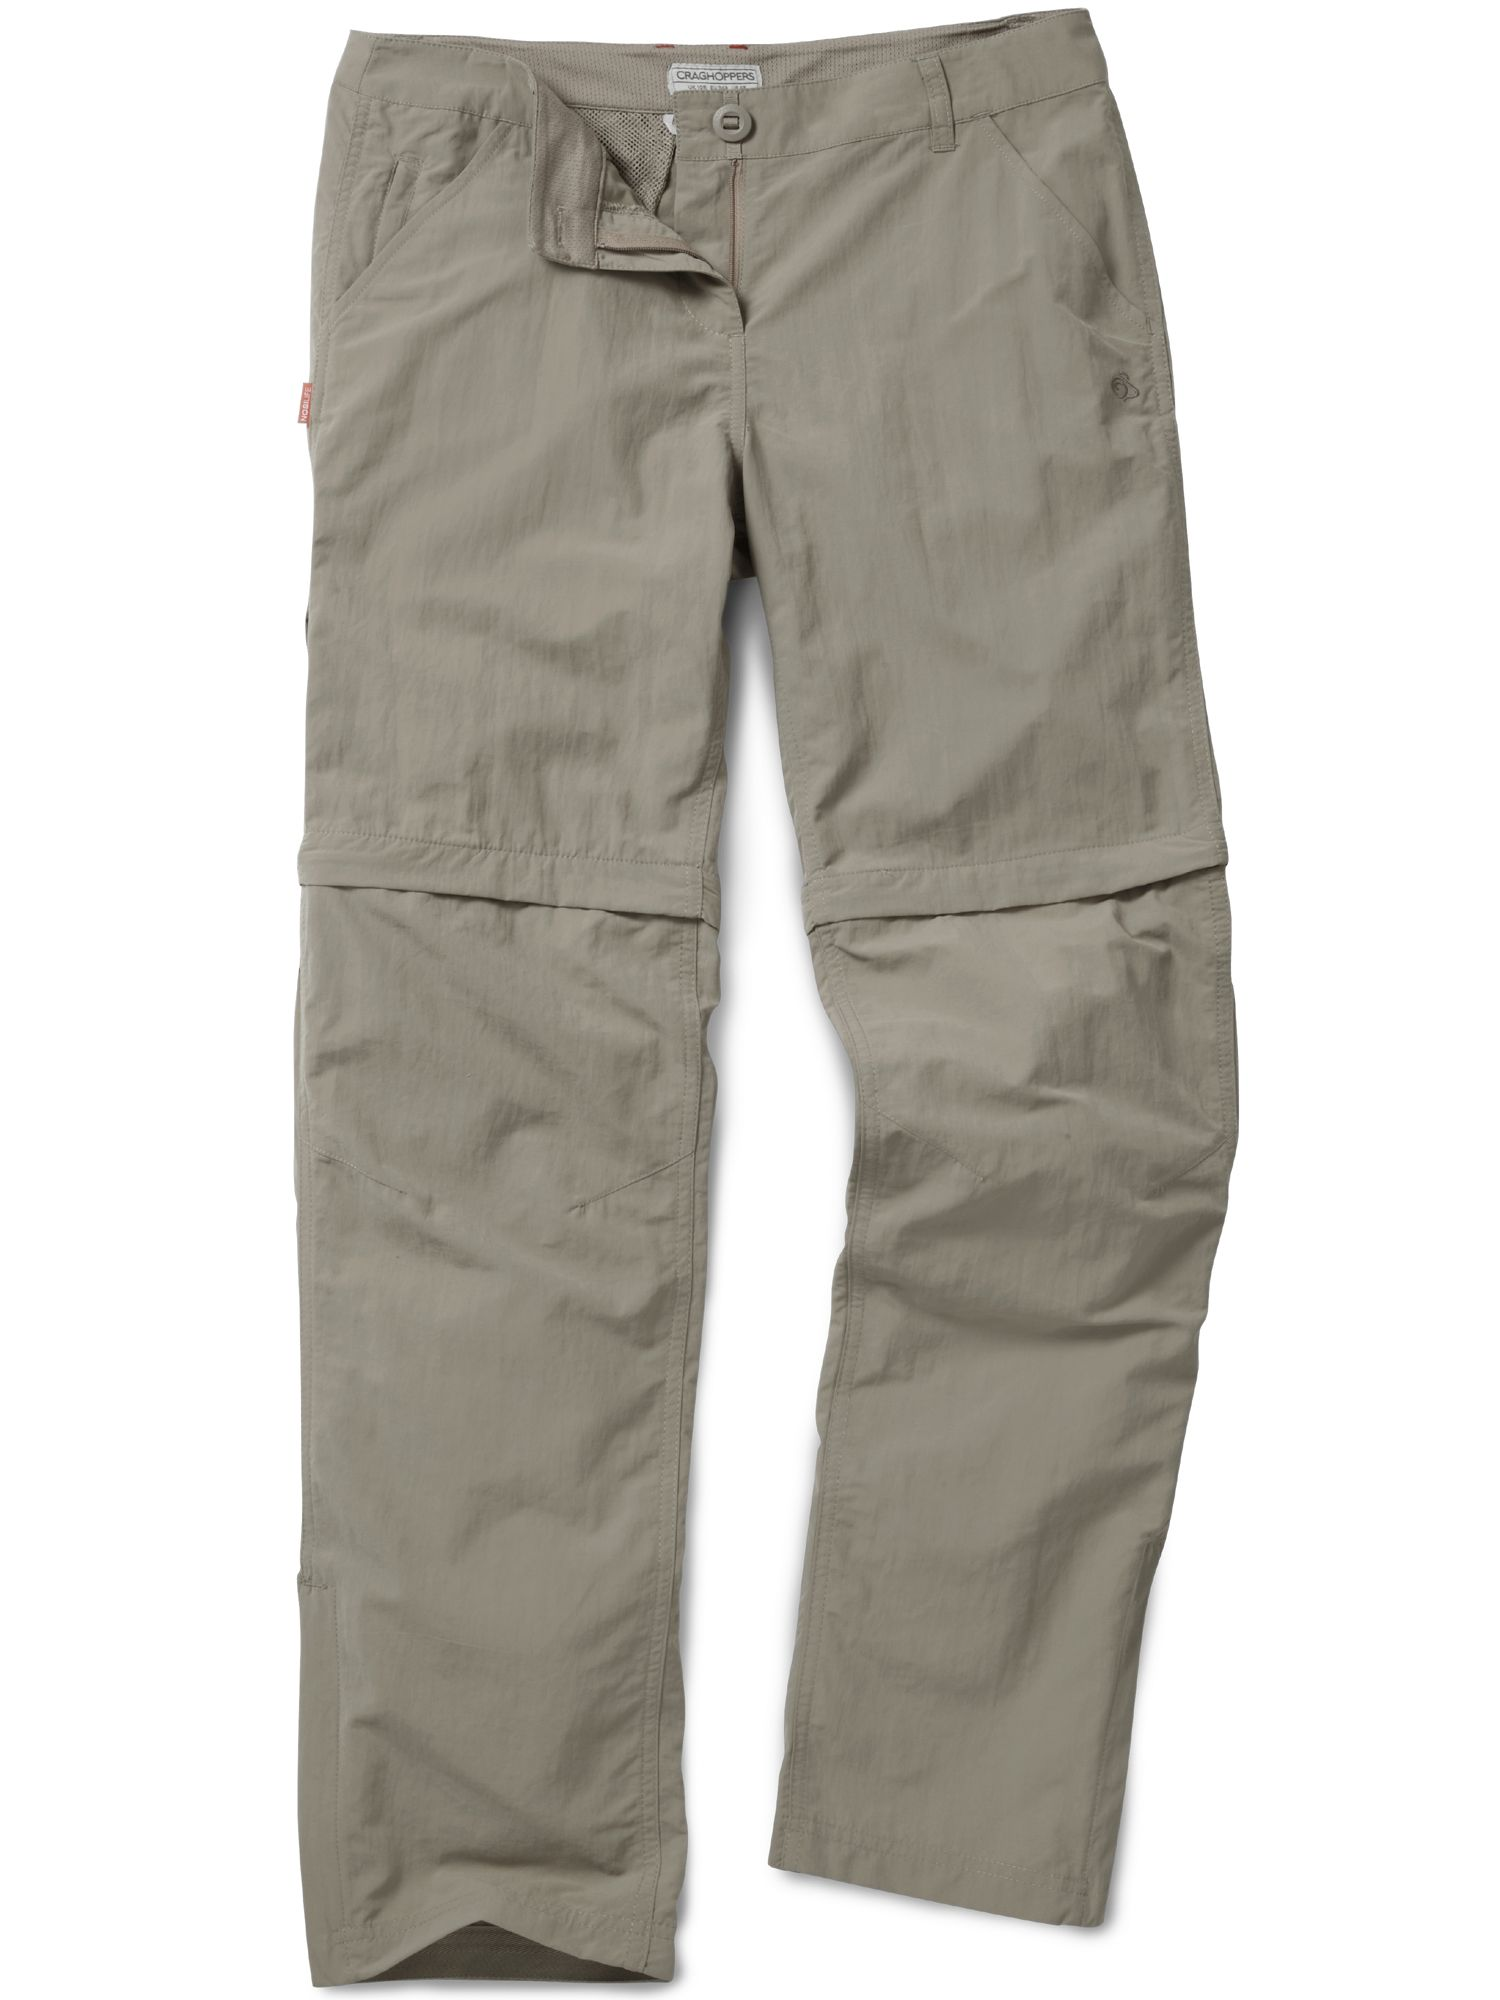 Craghoppers NosiLife Convertible Trousers, Mushroom